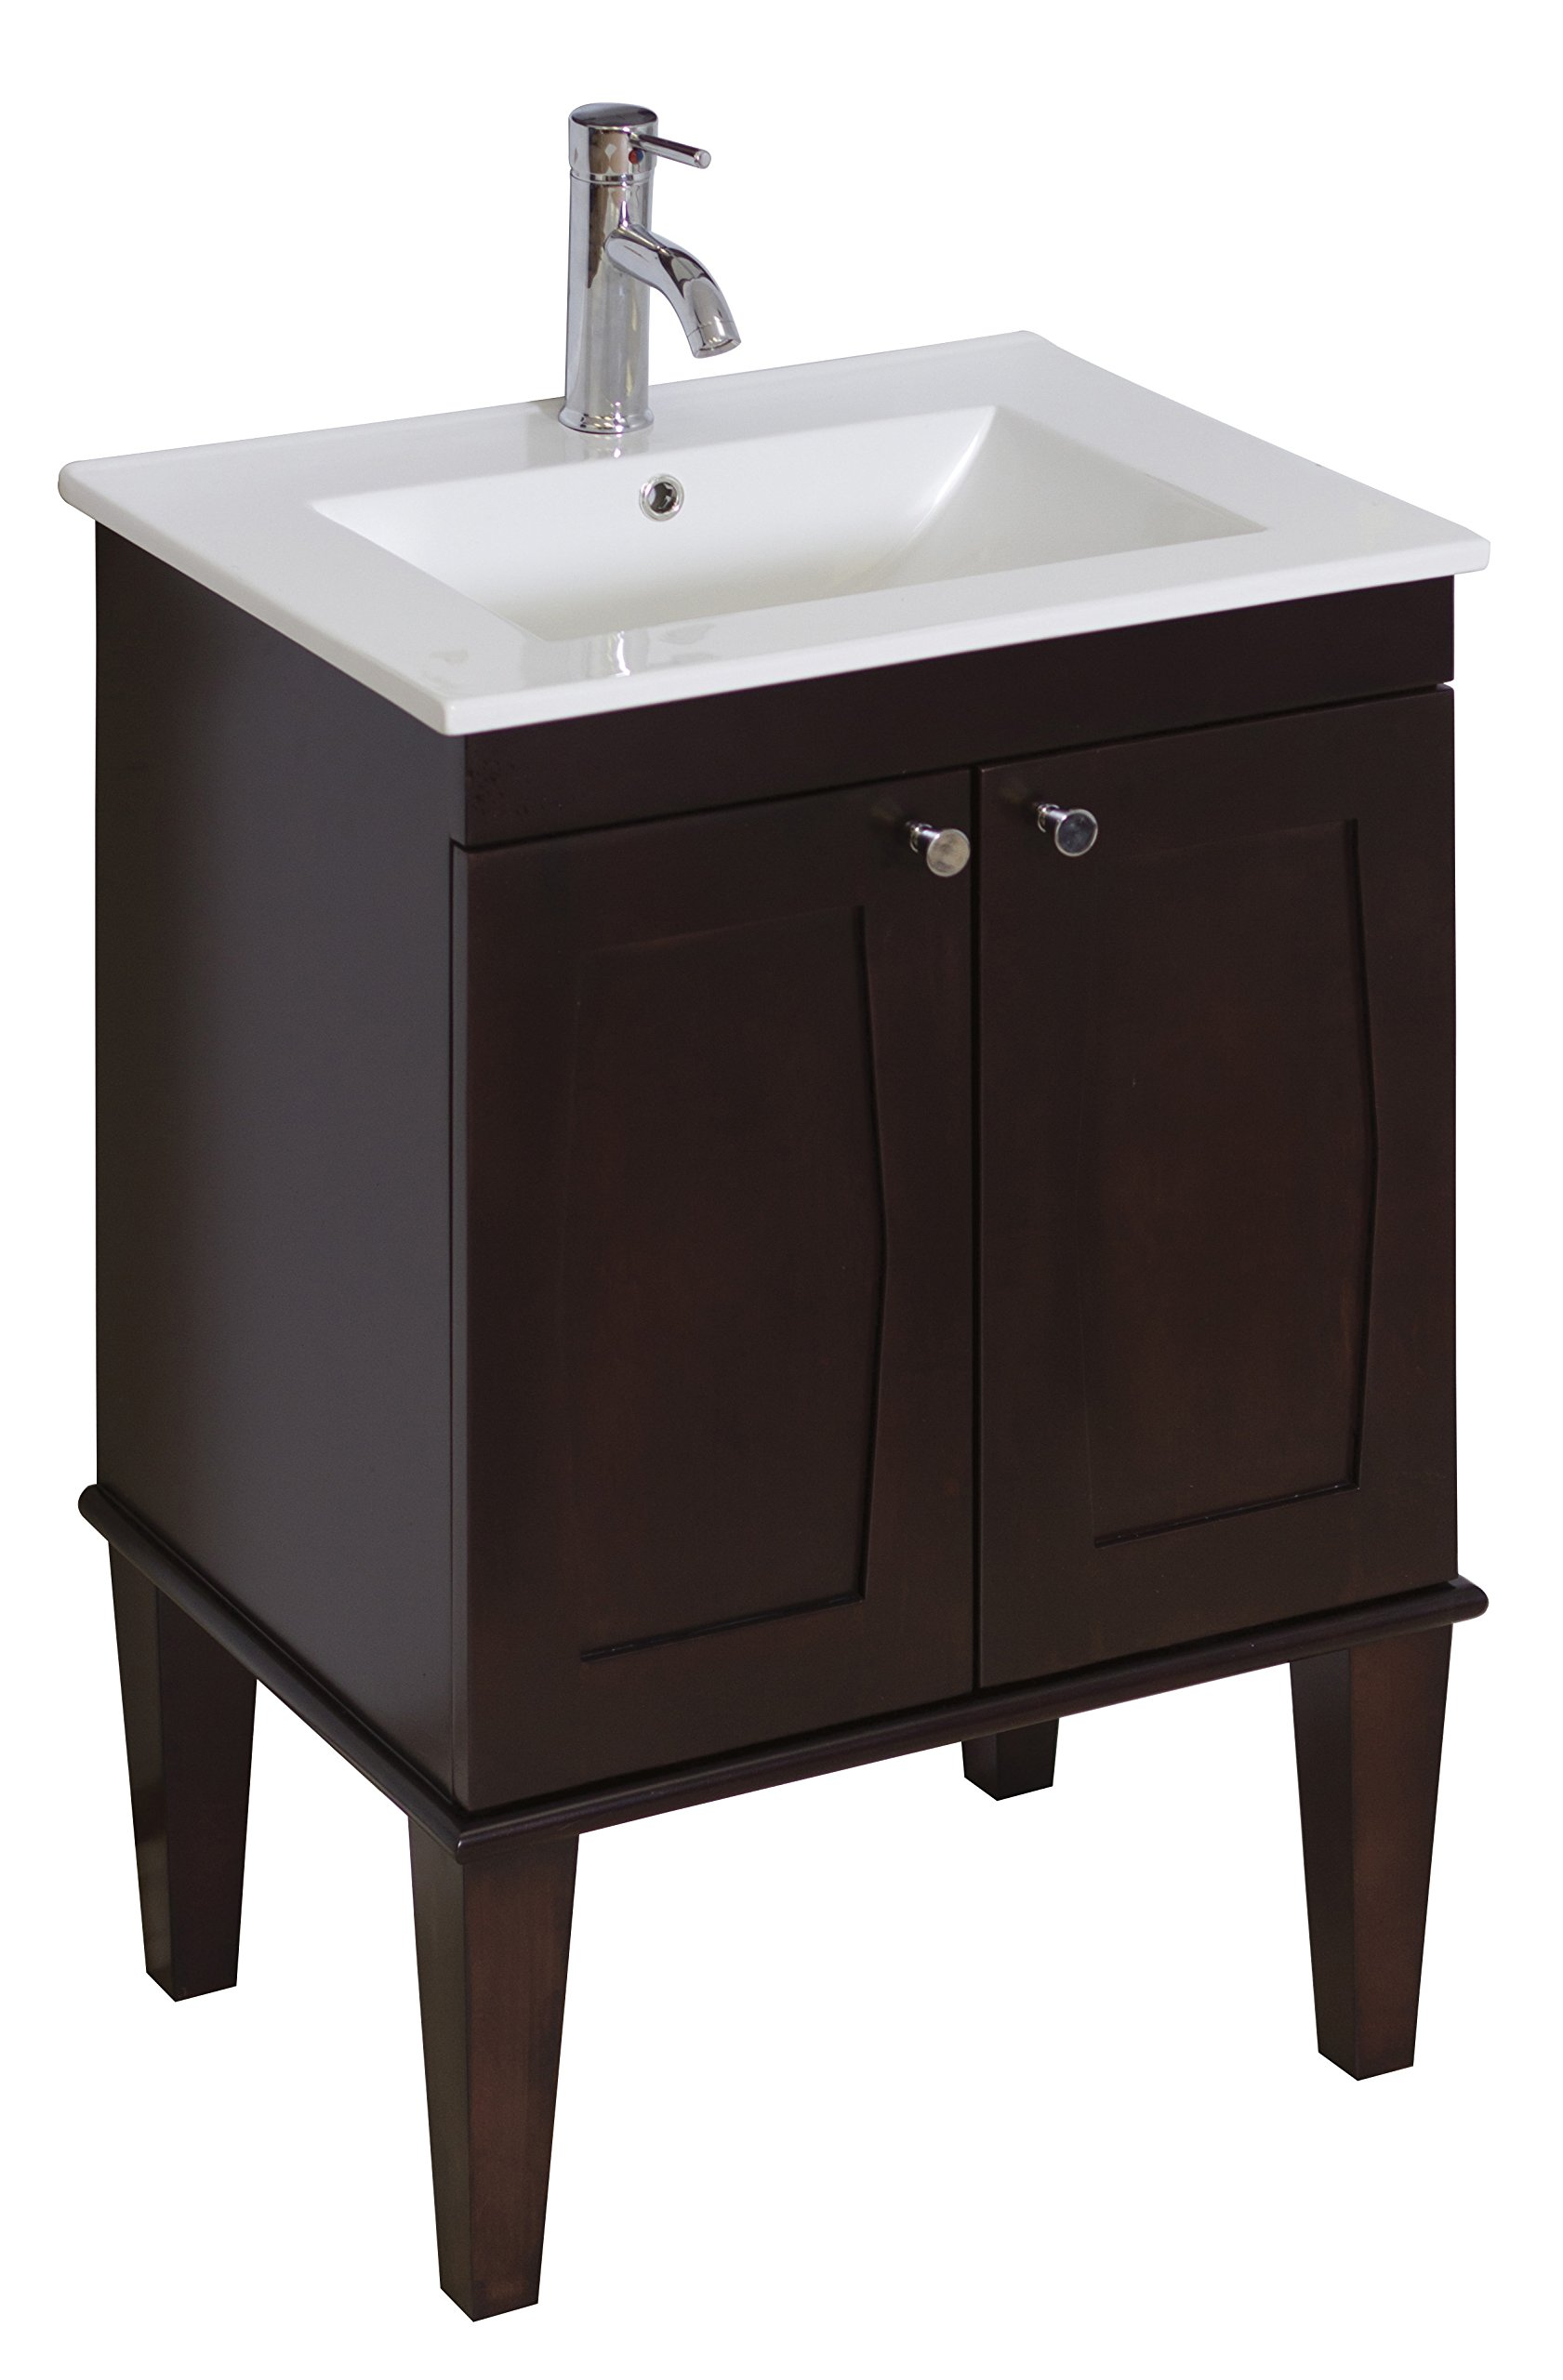 32-in. W X 18-in. D Transitional Birch Wood-Veneer Vanity Base Only In Antique Walnut by American Imaginations (Image #1)